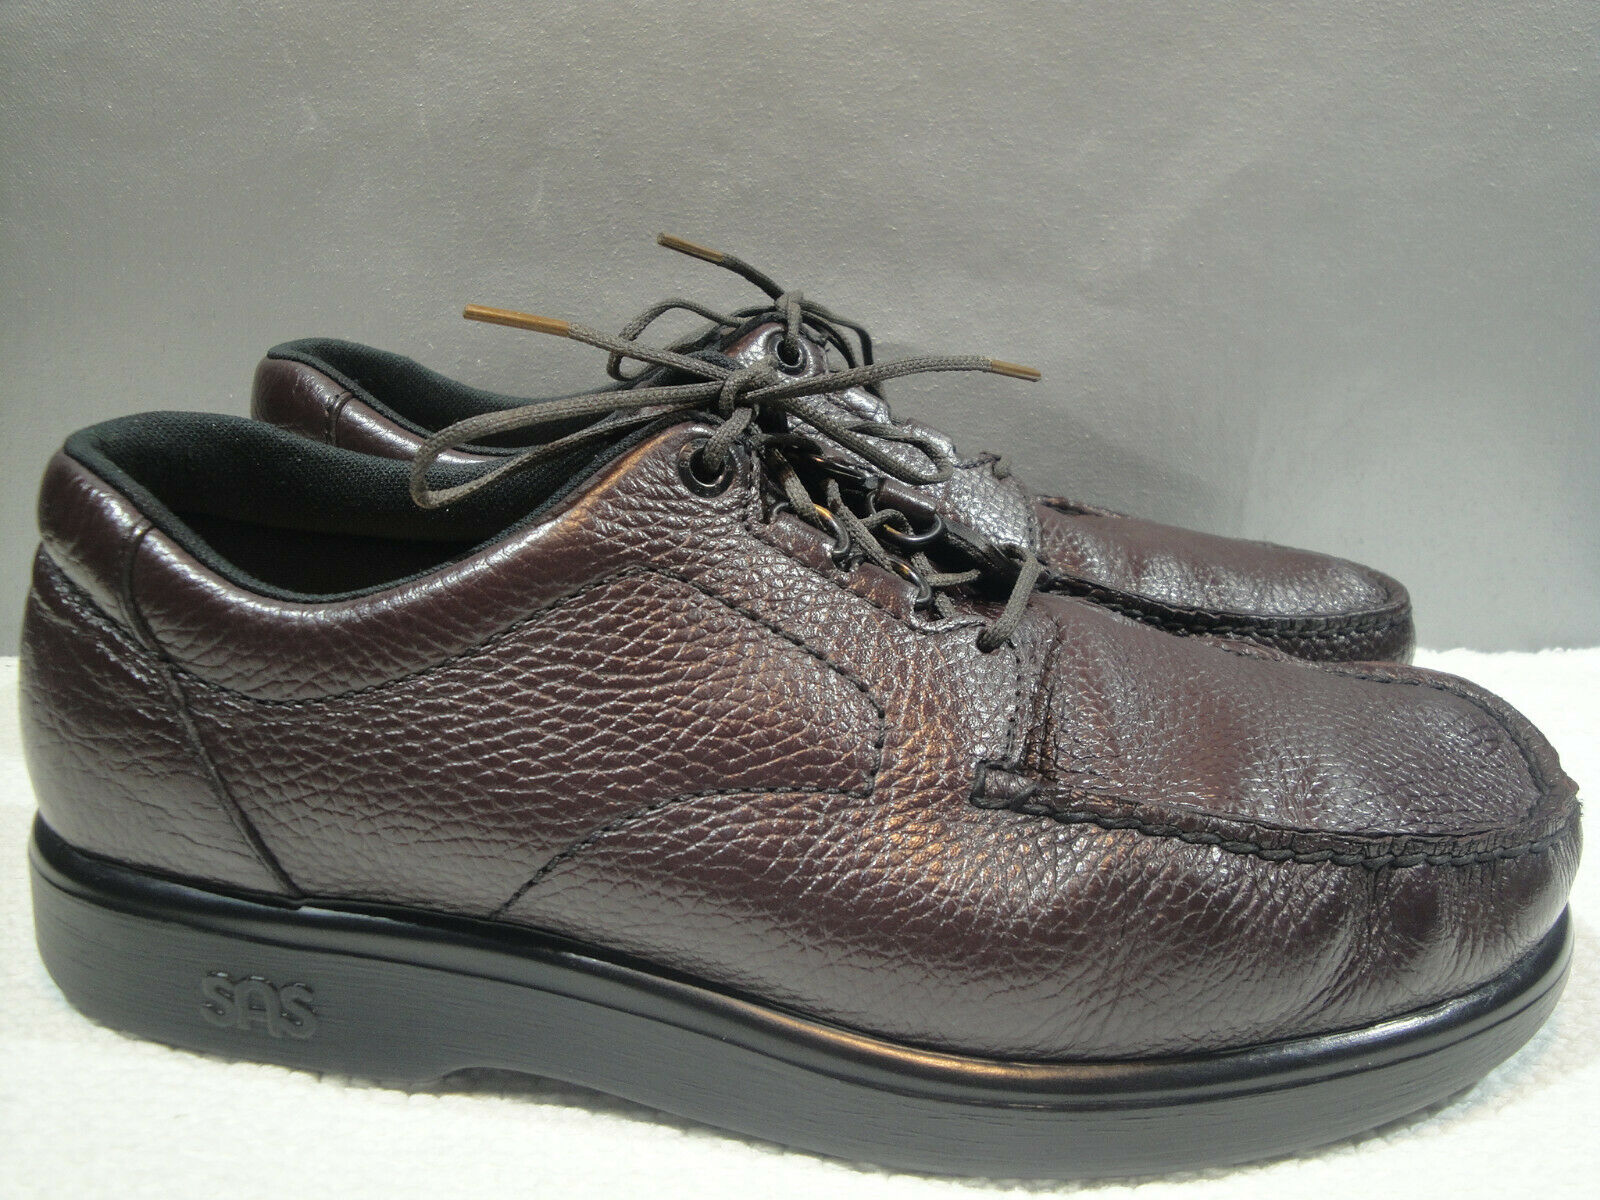 MENS 11 W SAS BOUT TIME USA CORDOVAN LEATHER MOCCASIN WALKING COMFORT OXFORD